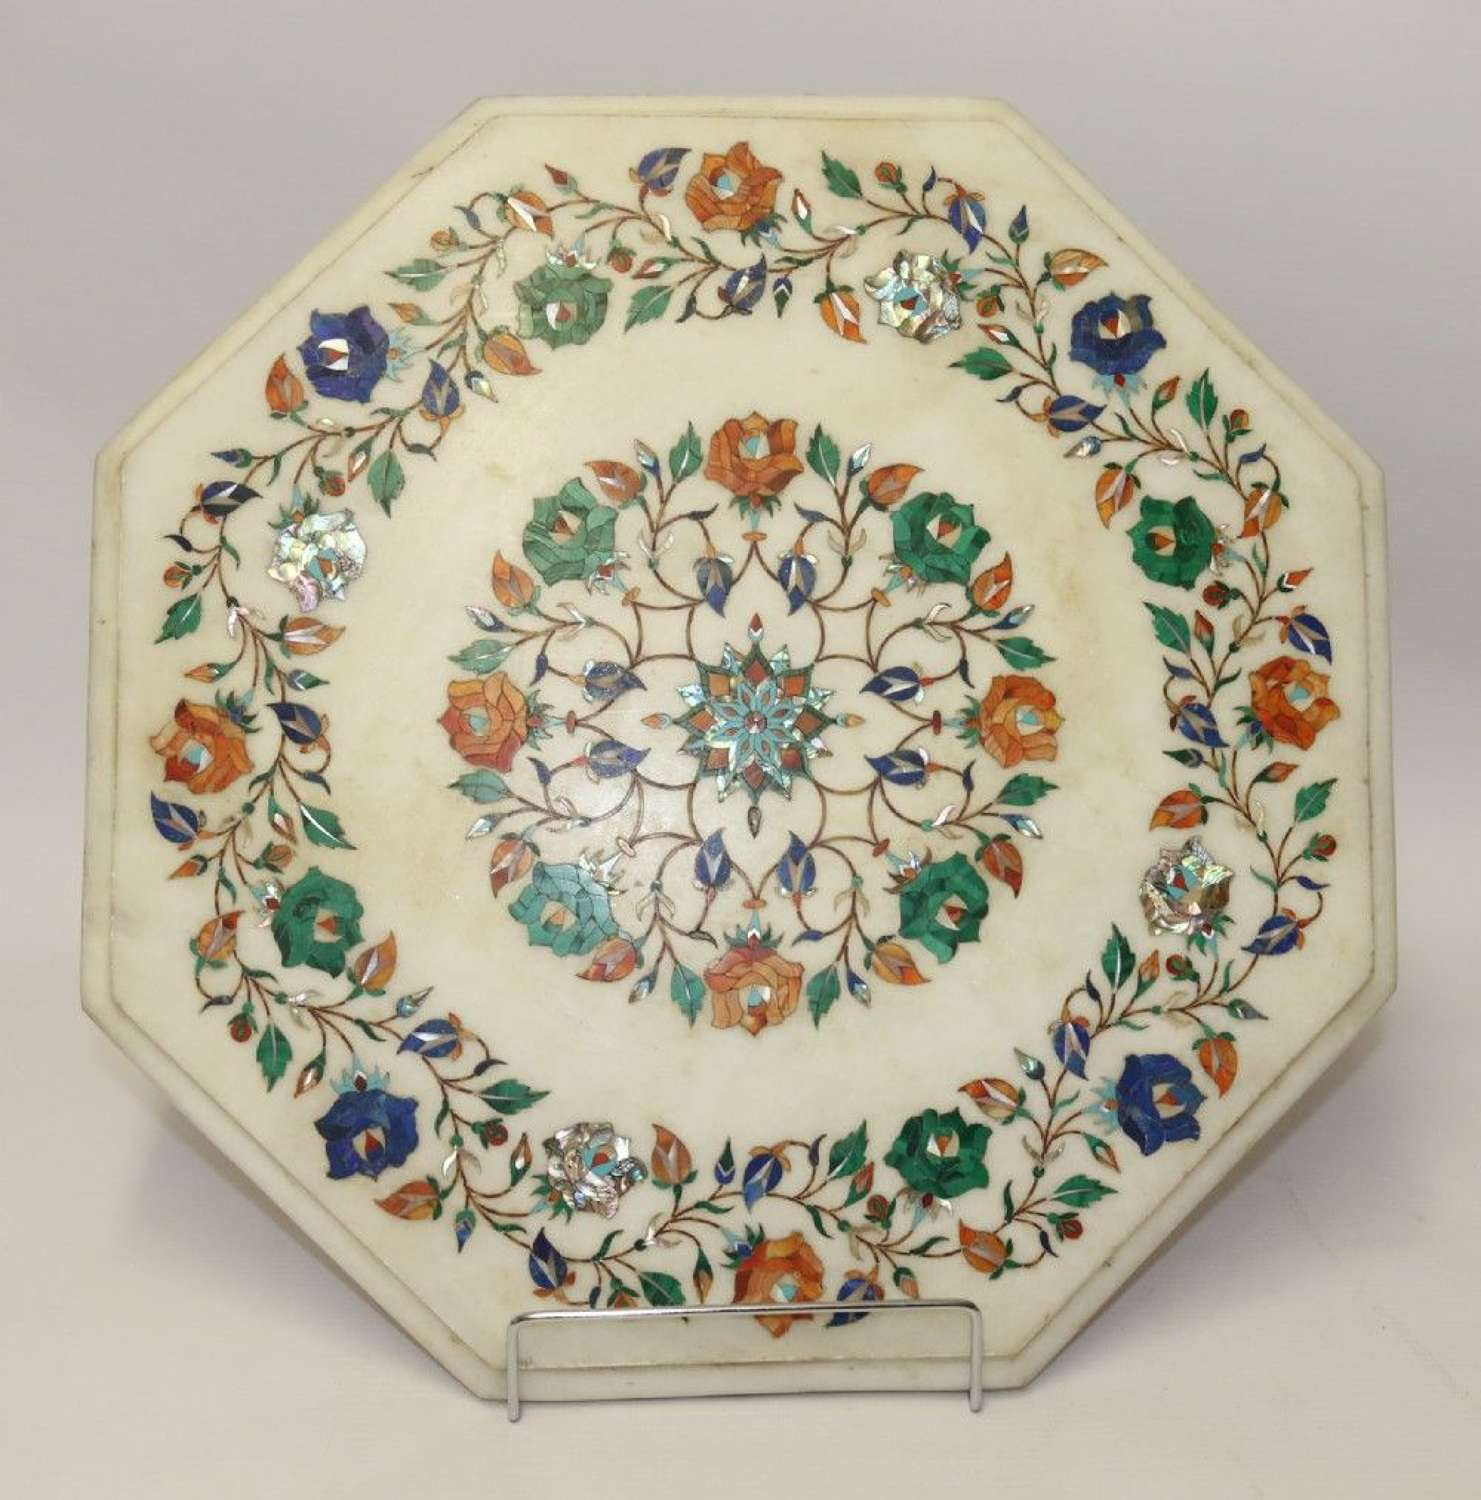 Indian White Marble Table Top Inlaid With Semi Precious Cut Stones, C 1900